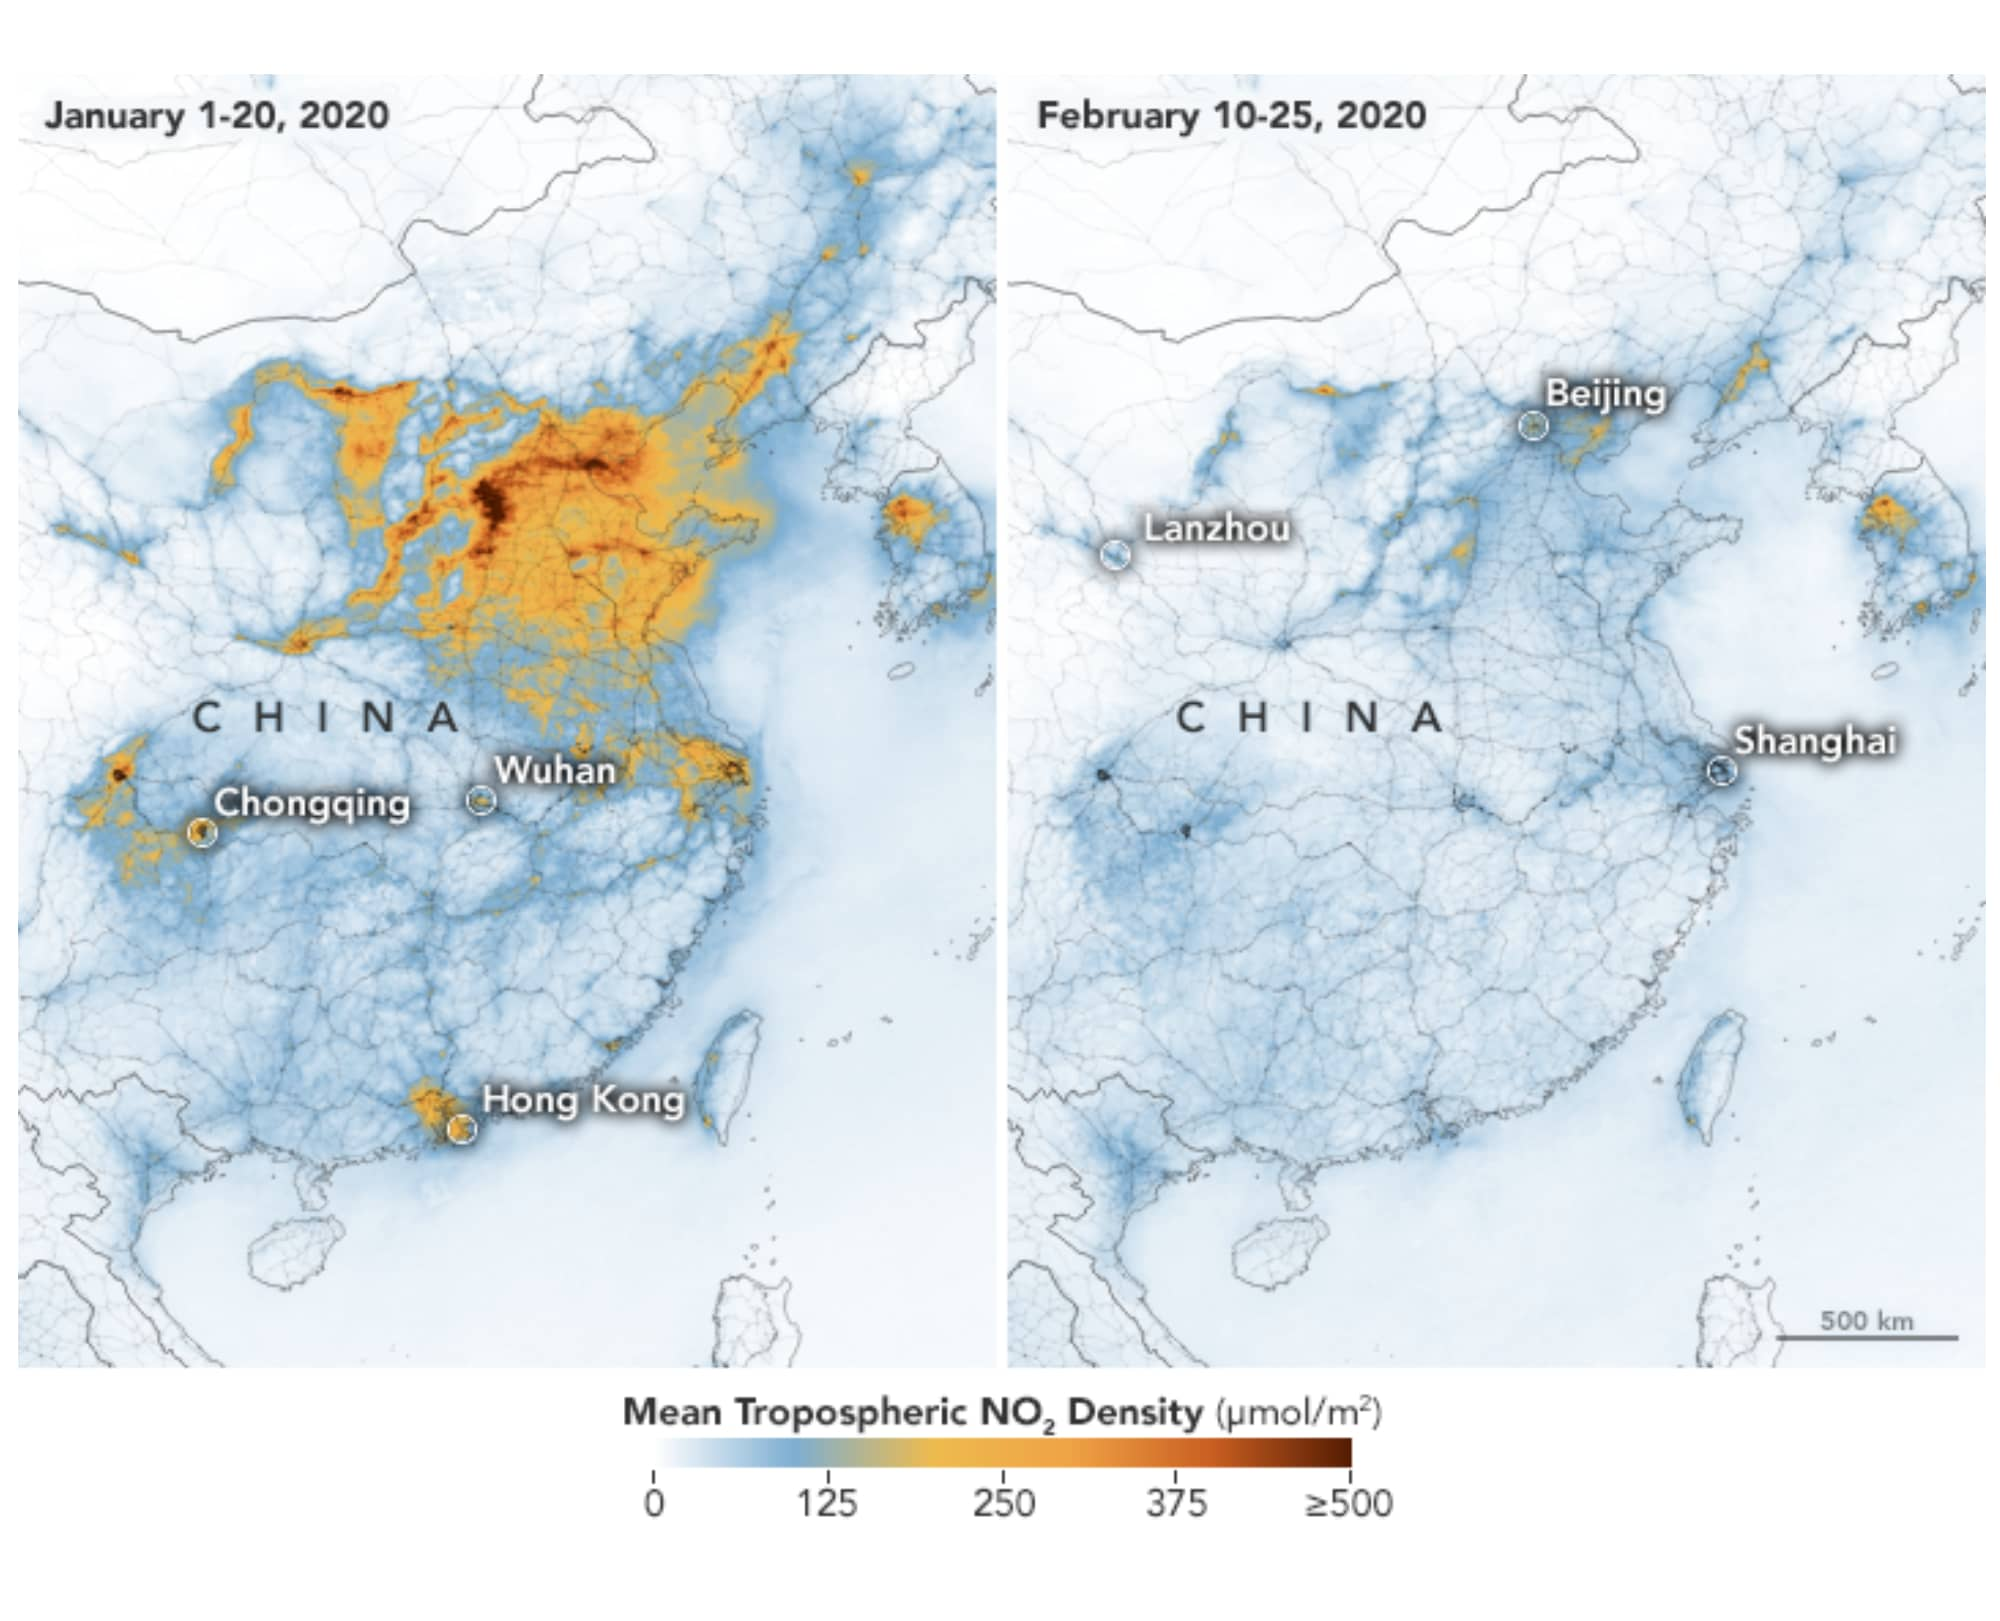 NASA images: China's air pollution decreased amid coronavirus measures